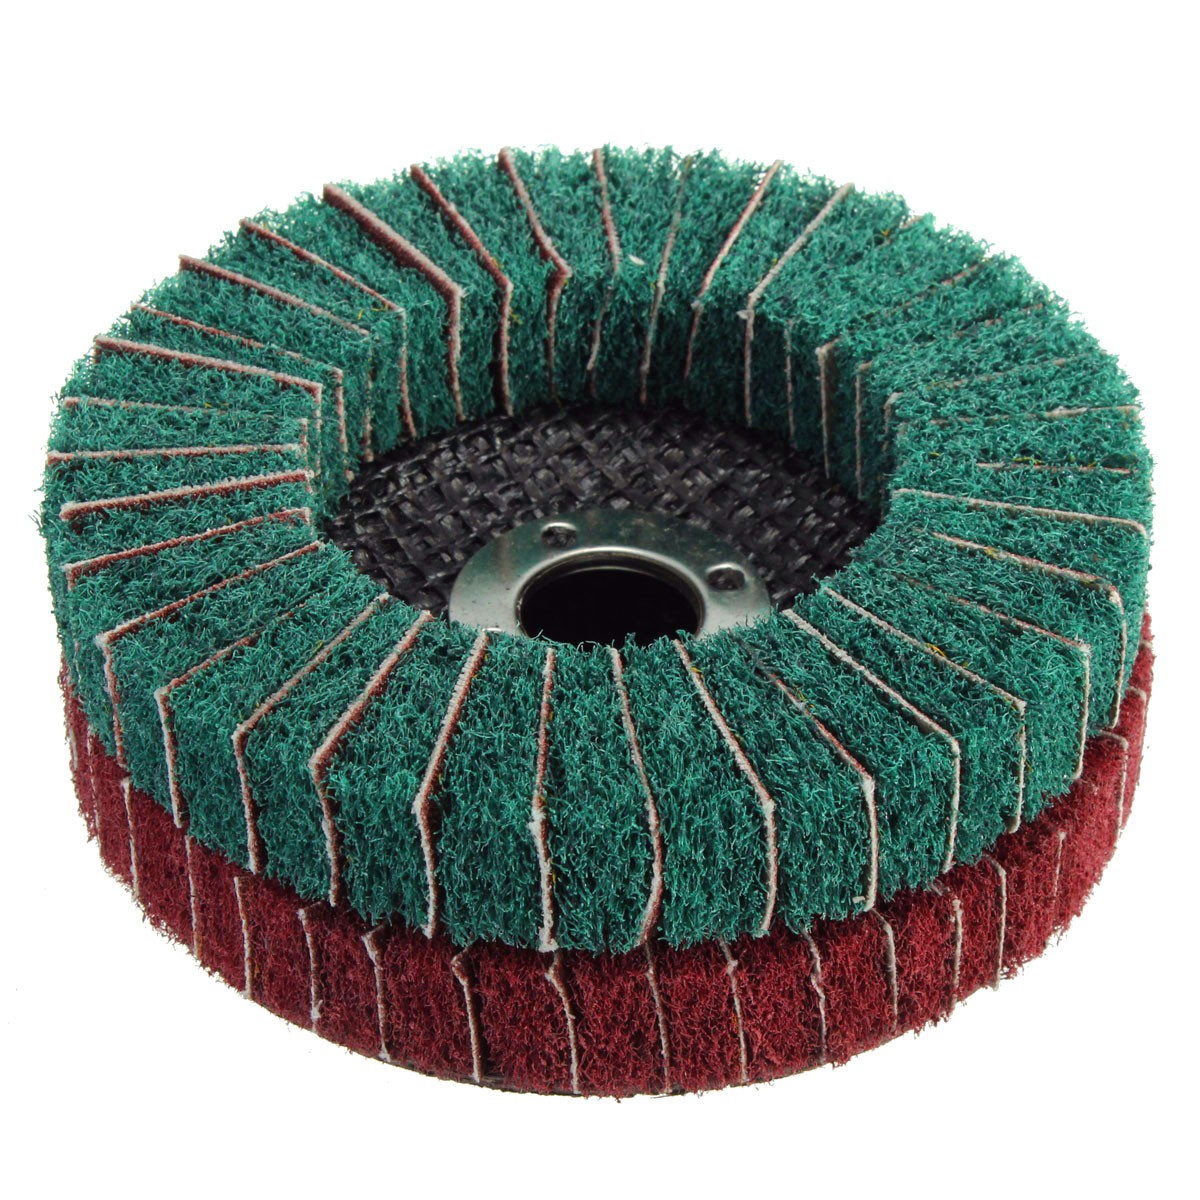 1Pcs Nylon 10cm Fiber Buffing Wheel Abrasive Polishing Buffing Disc 280/320 Grit Nylon Fiber Polishing Wheel